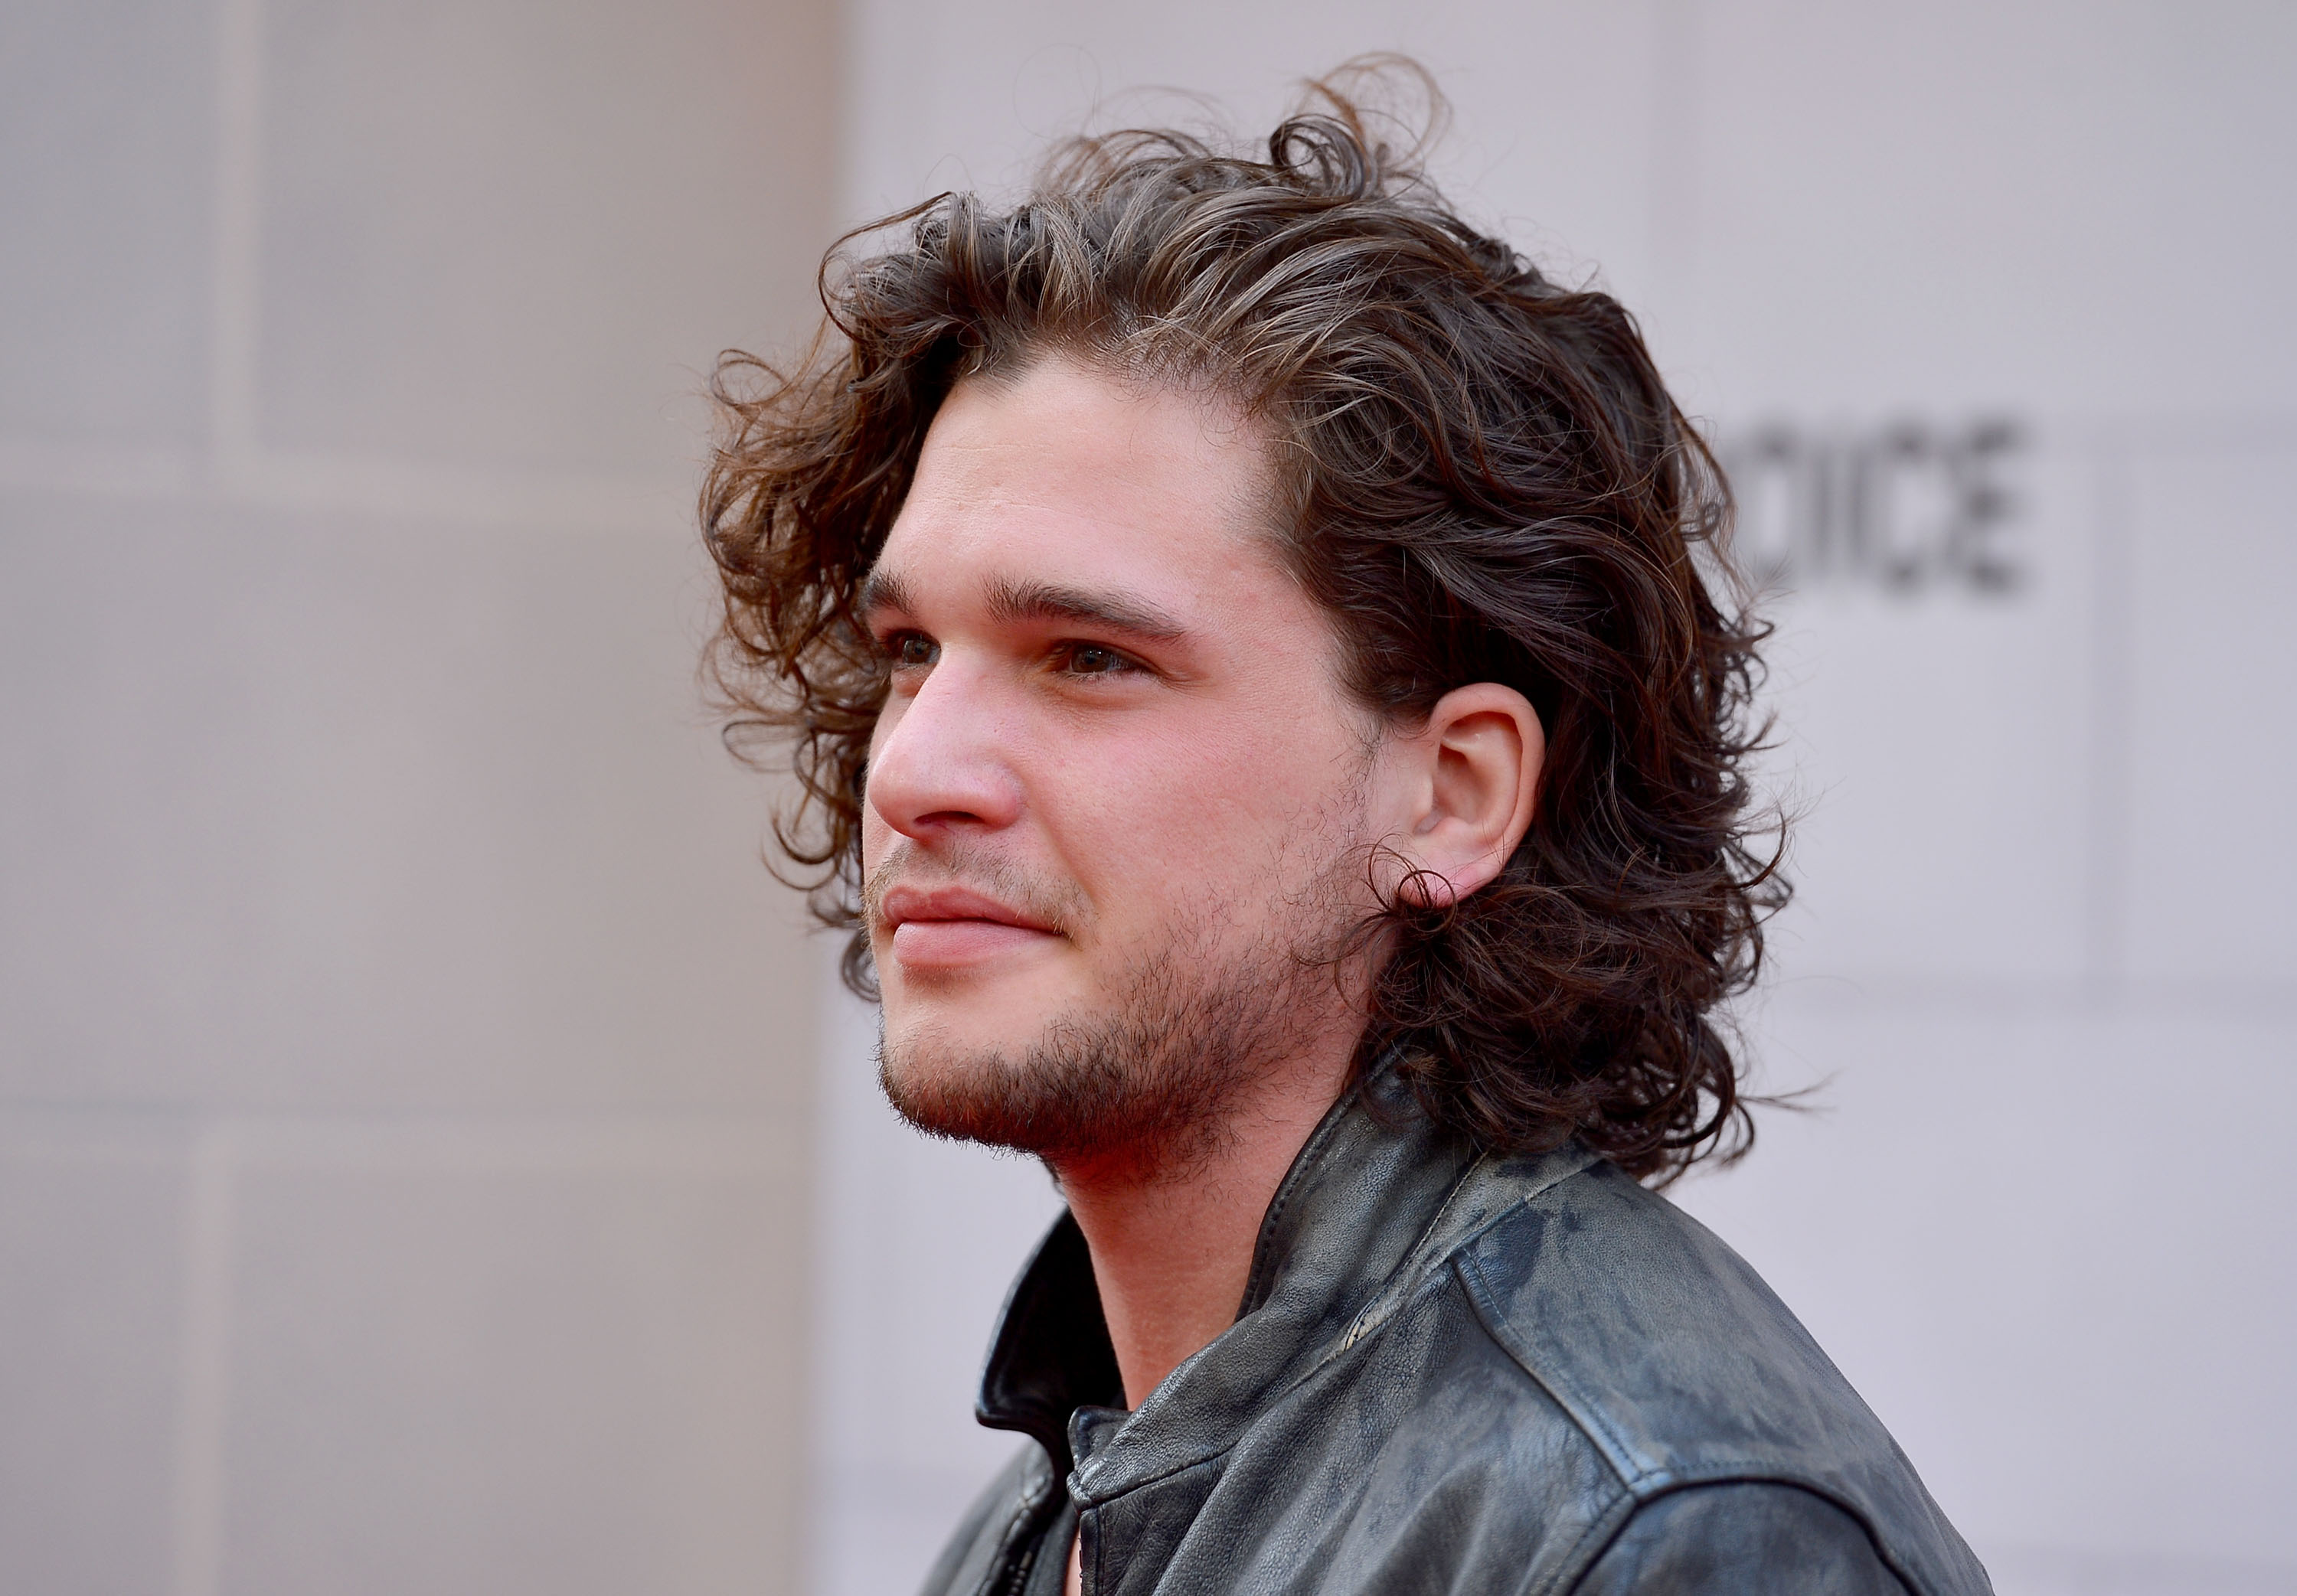 Kit Harington facts